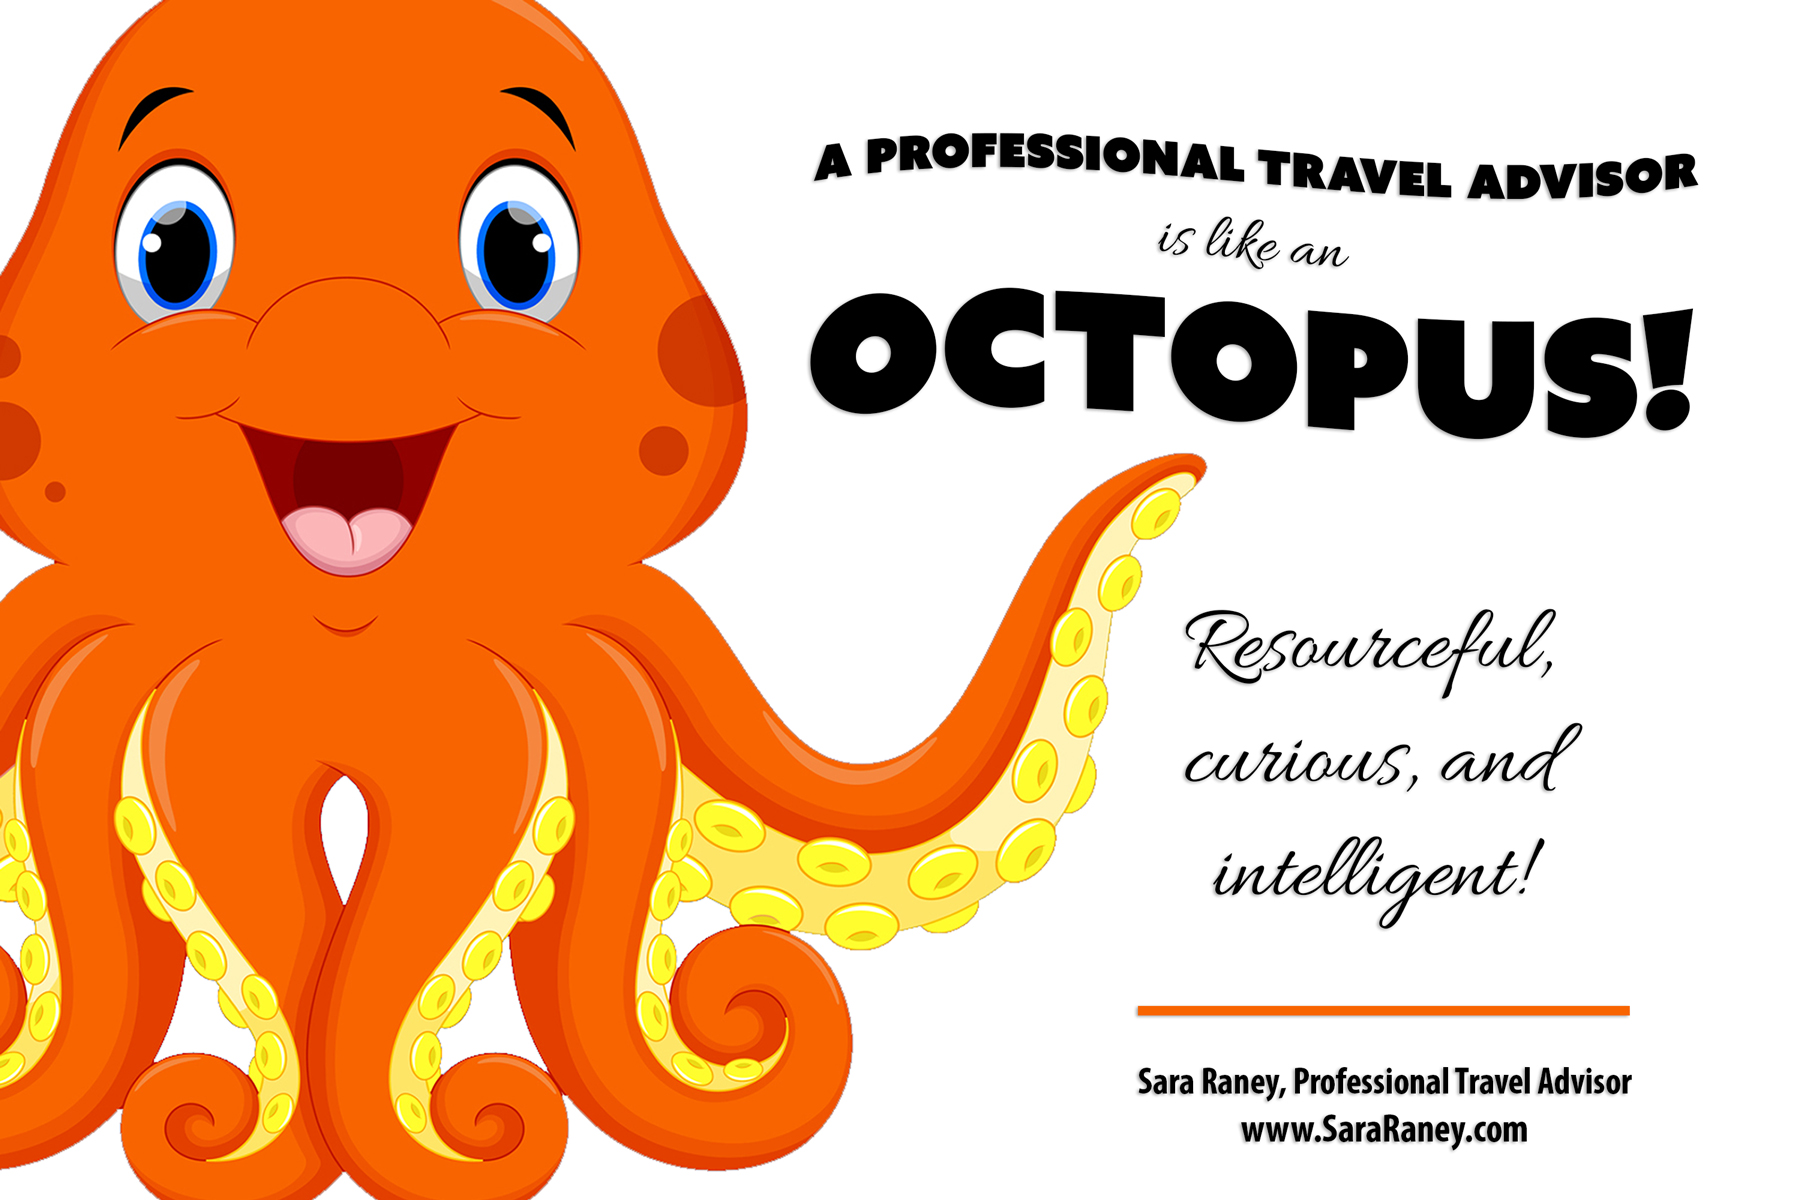 A professional travel advisor is like an octopus.